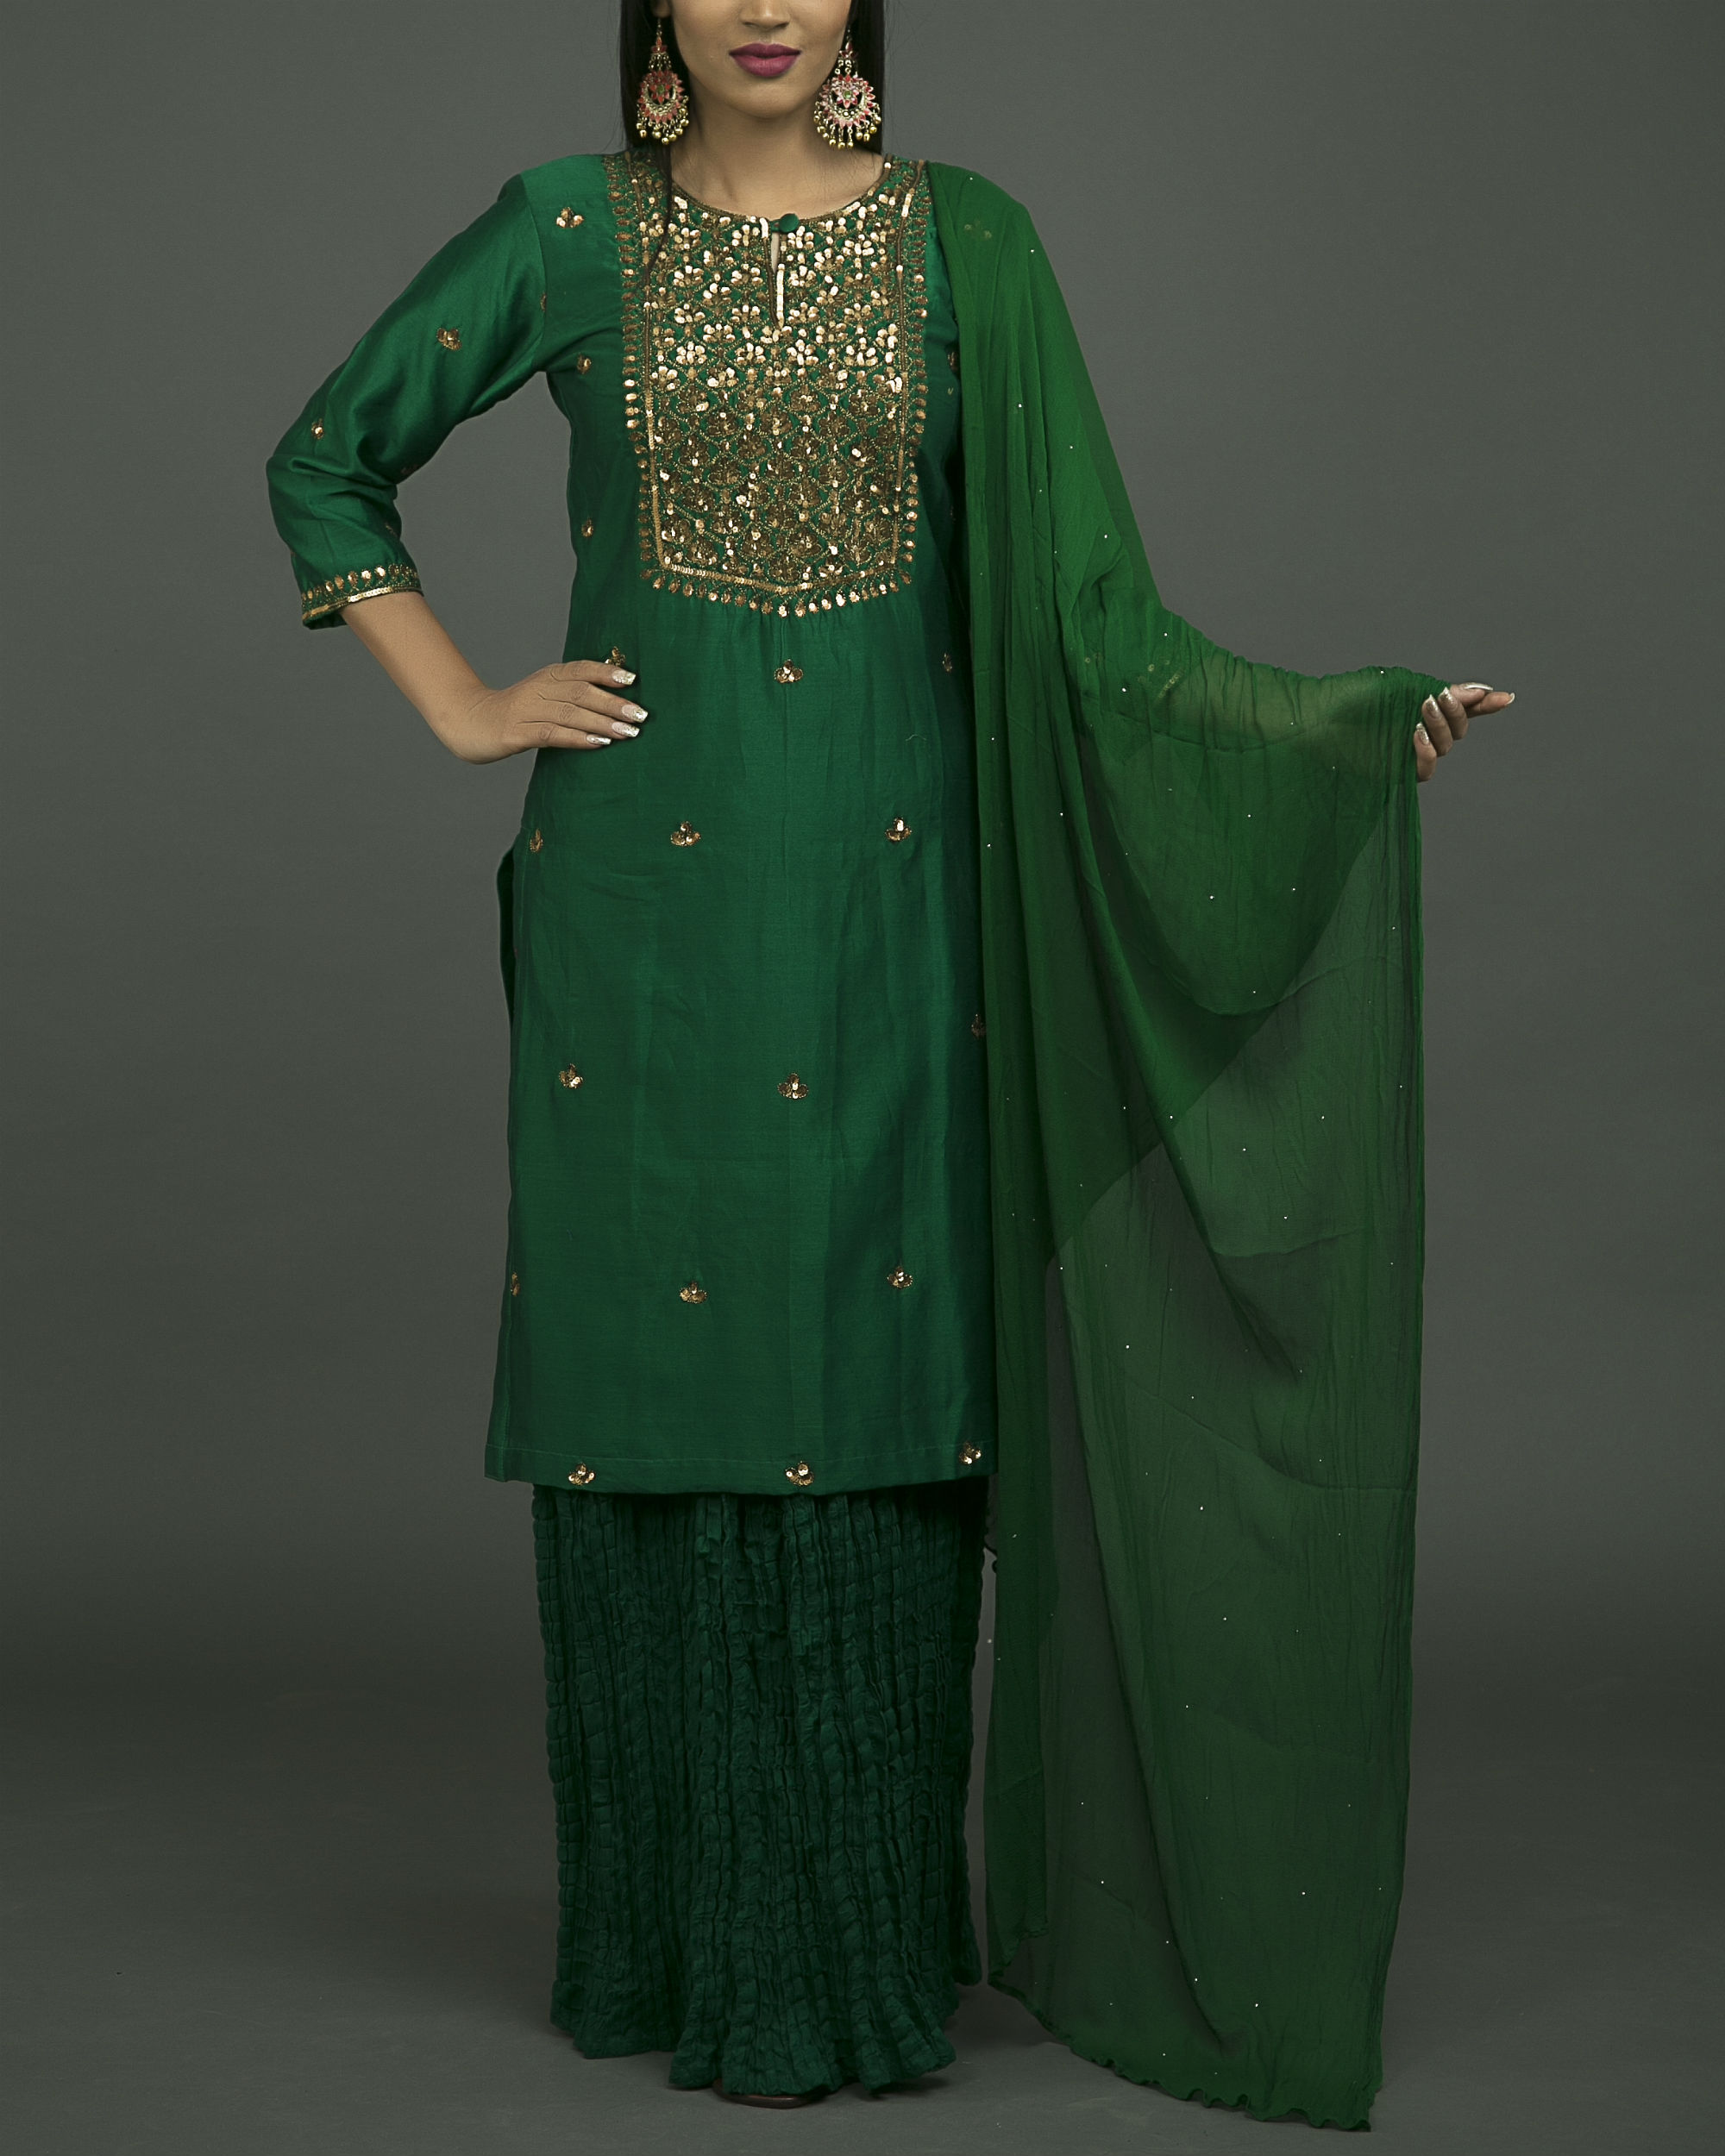 Hazrat begum embroidered kurta set with green chiffon dupatta